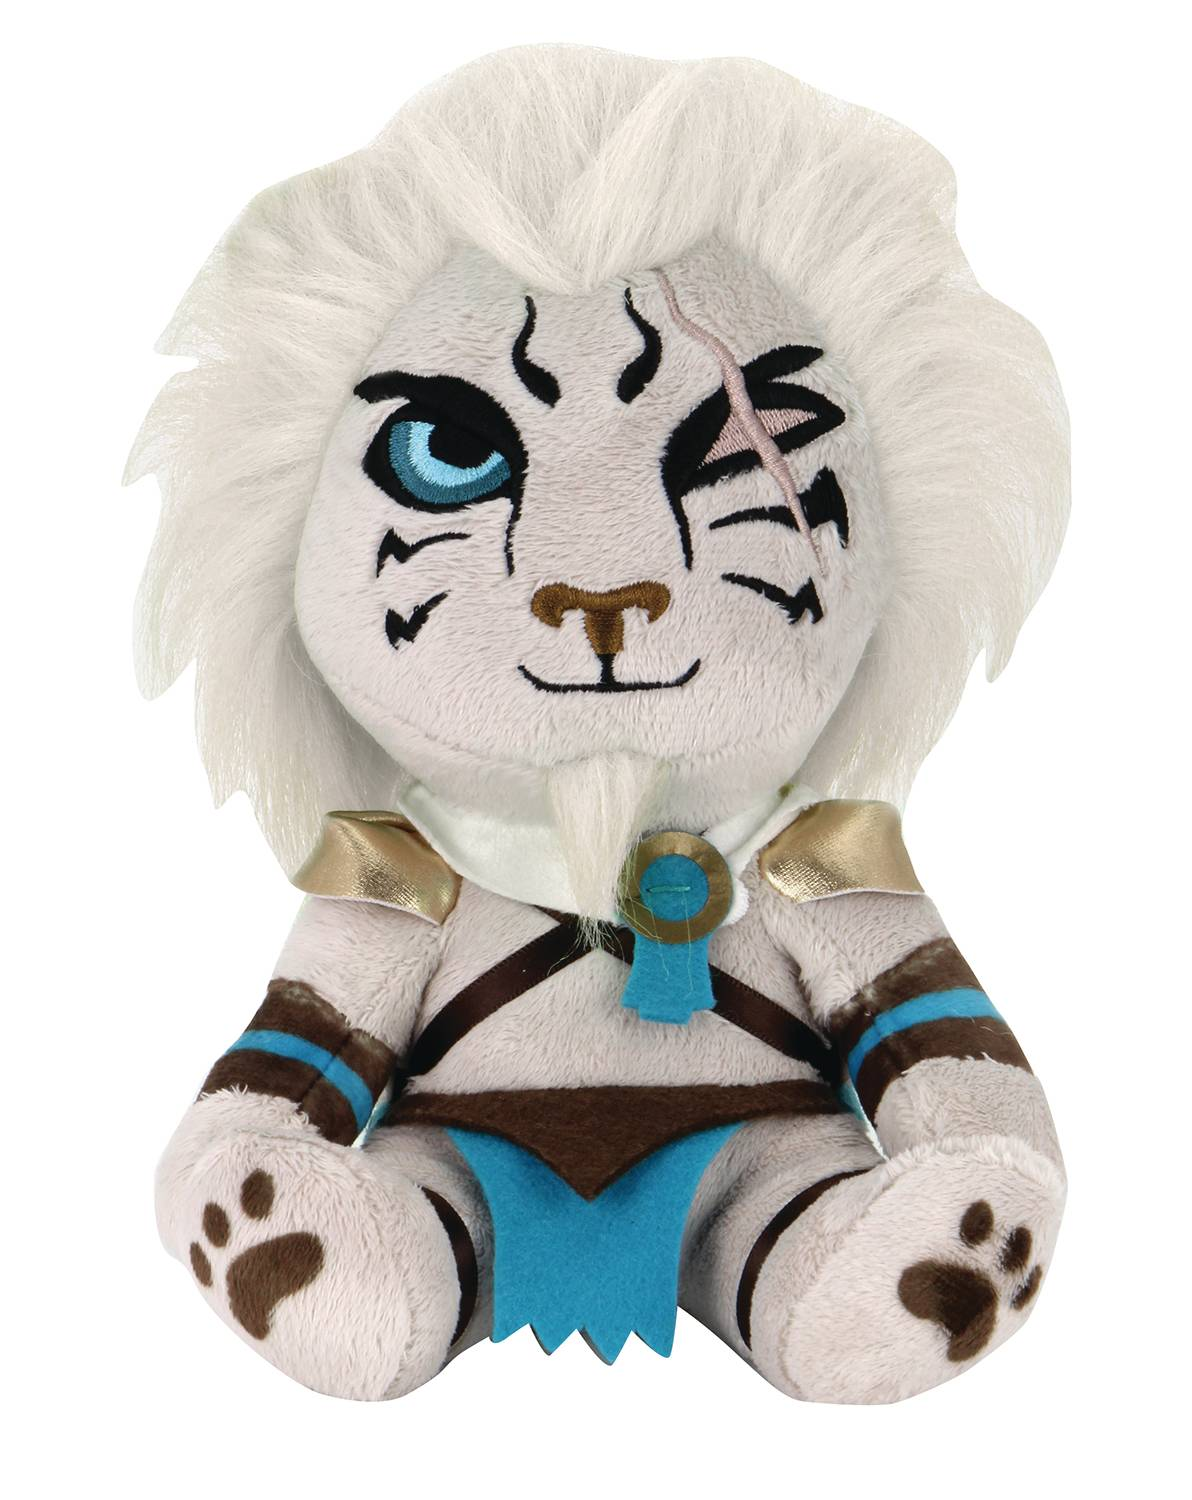 PHUNNY MAGIC THE GATHERING AJANI PLUSH